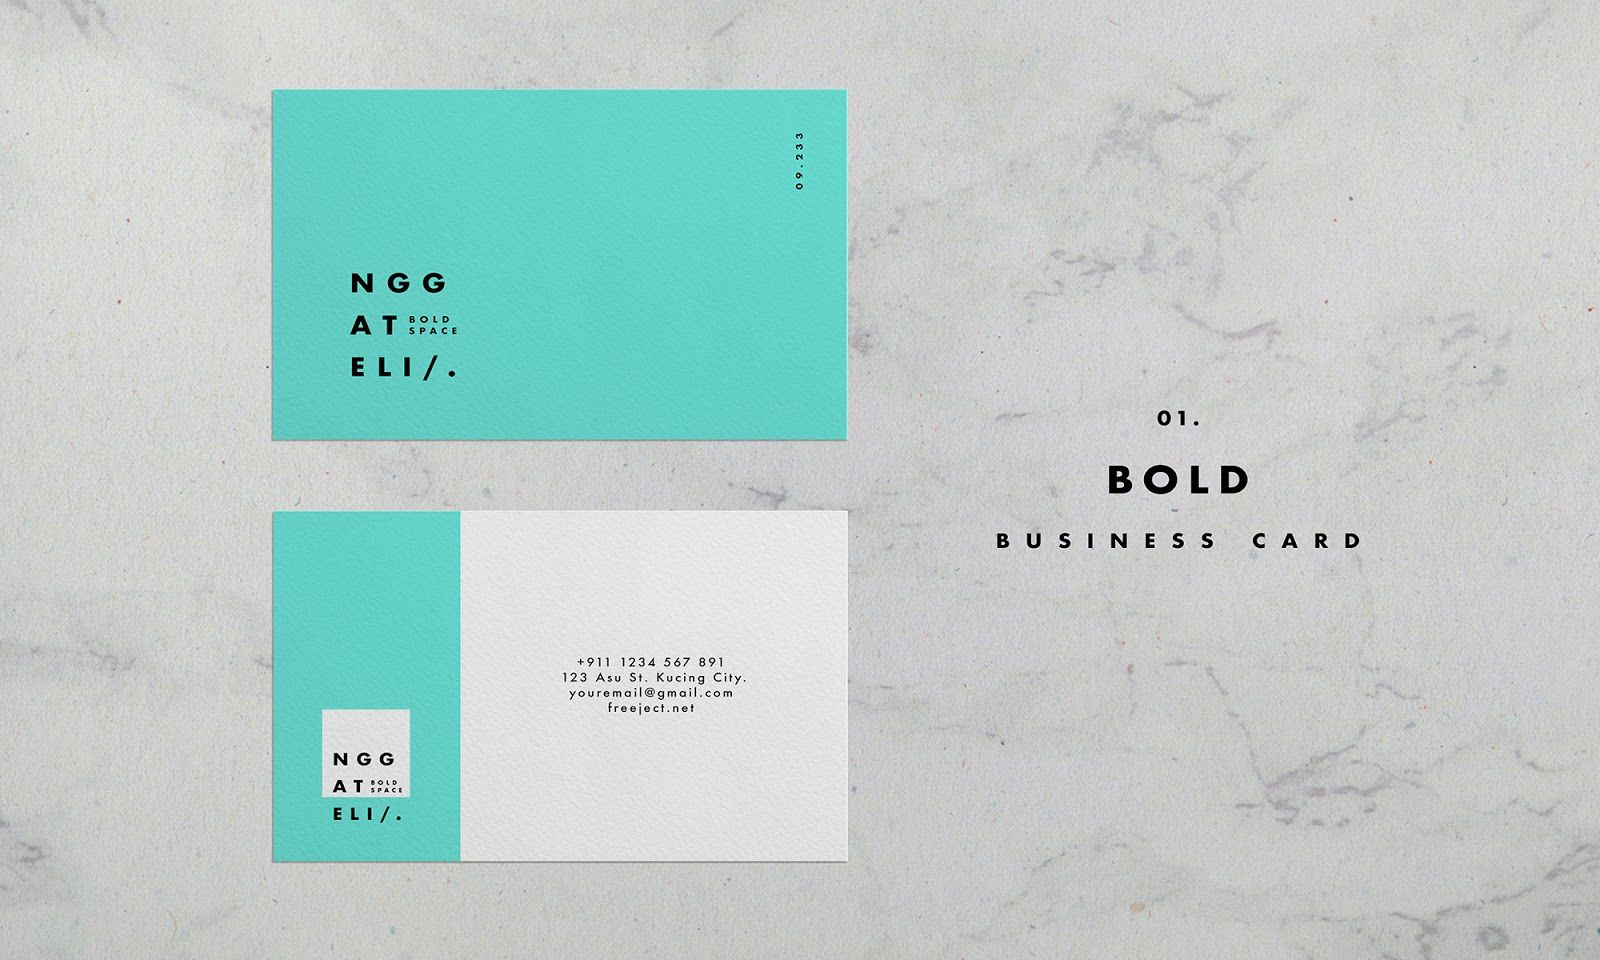 008 Incredible Simple Busines Card Template Photoshop Design Full